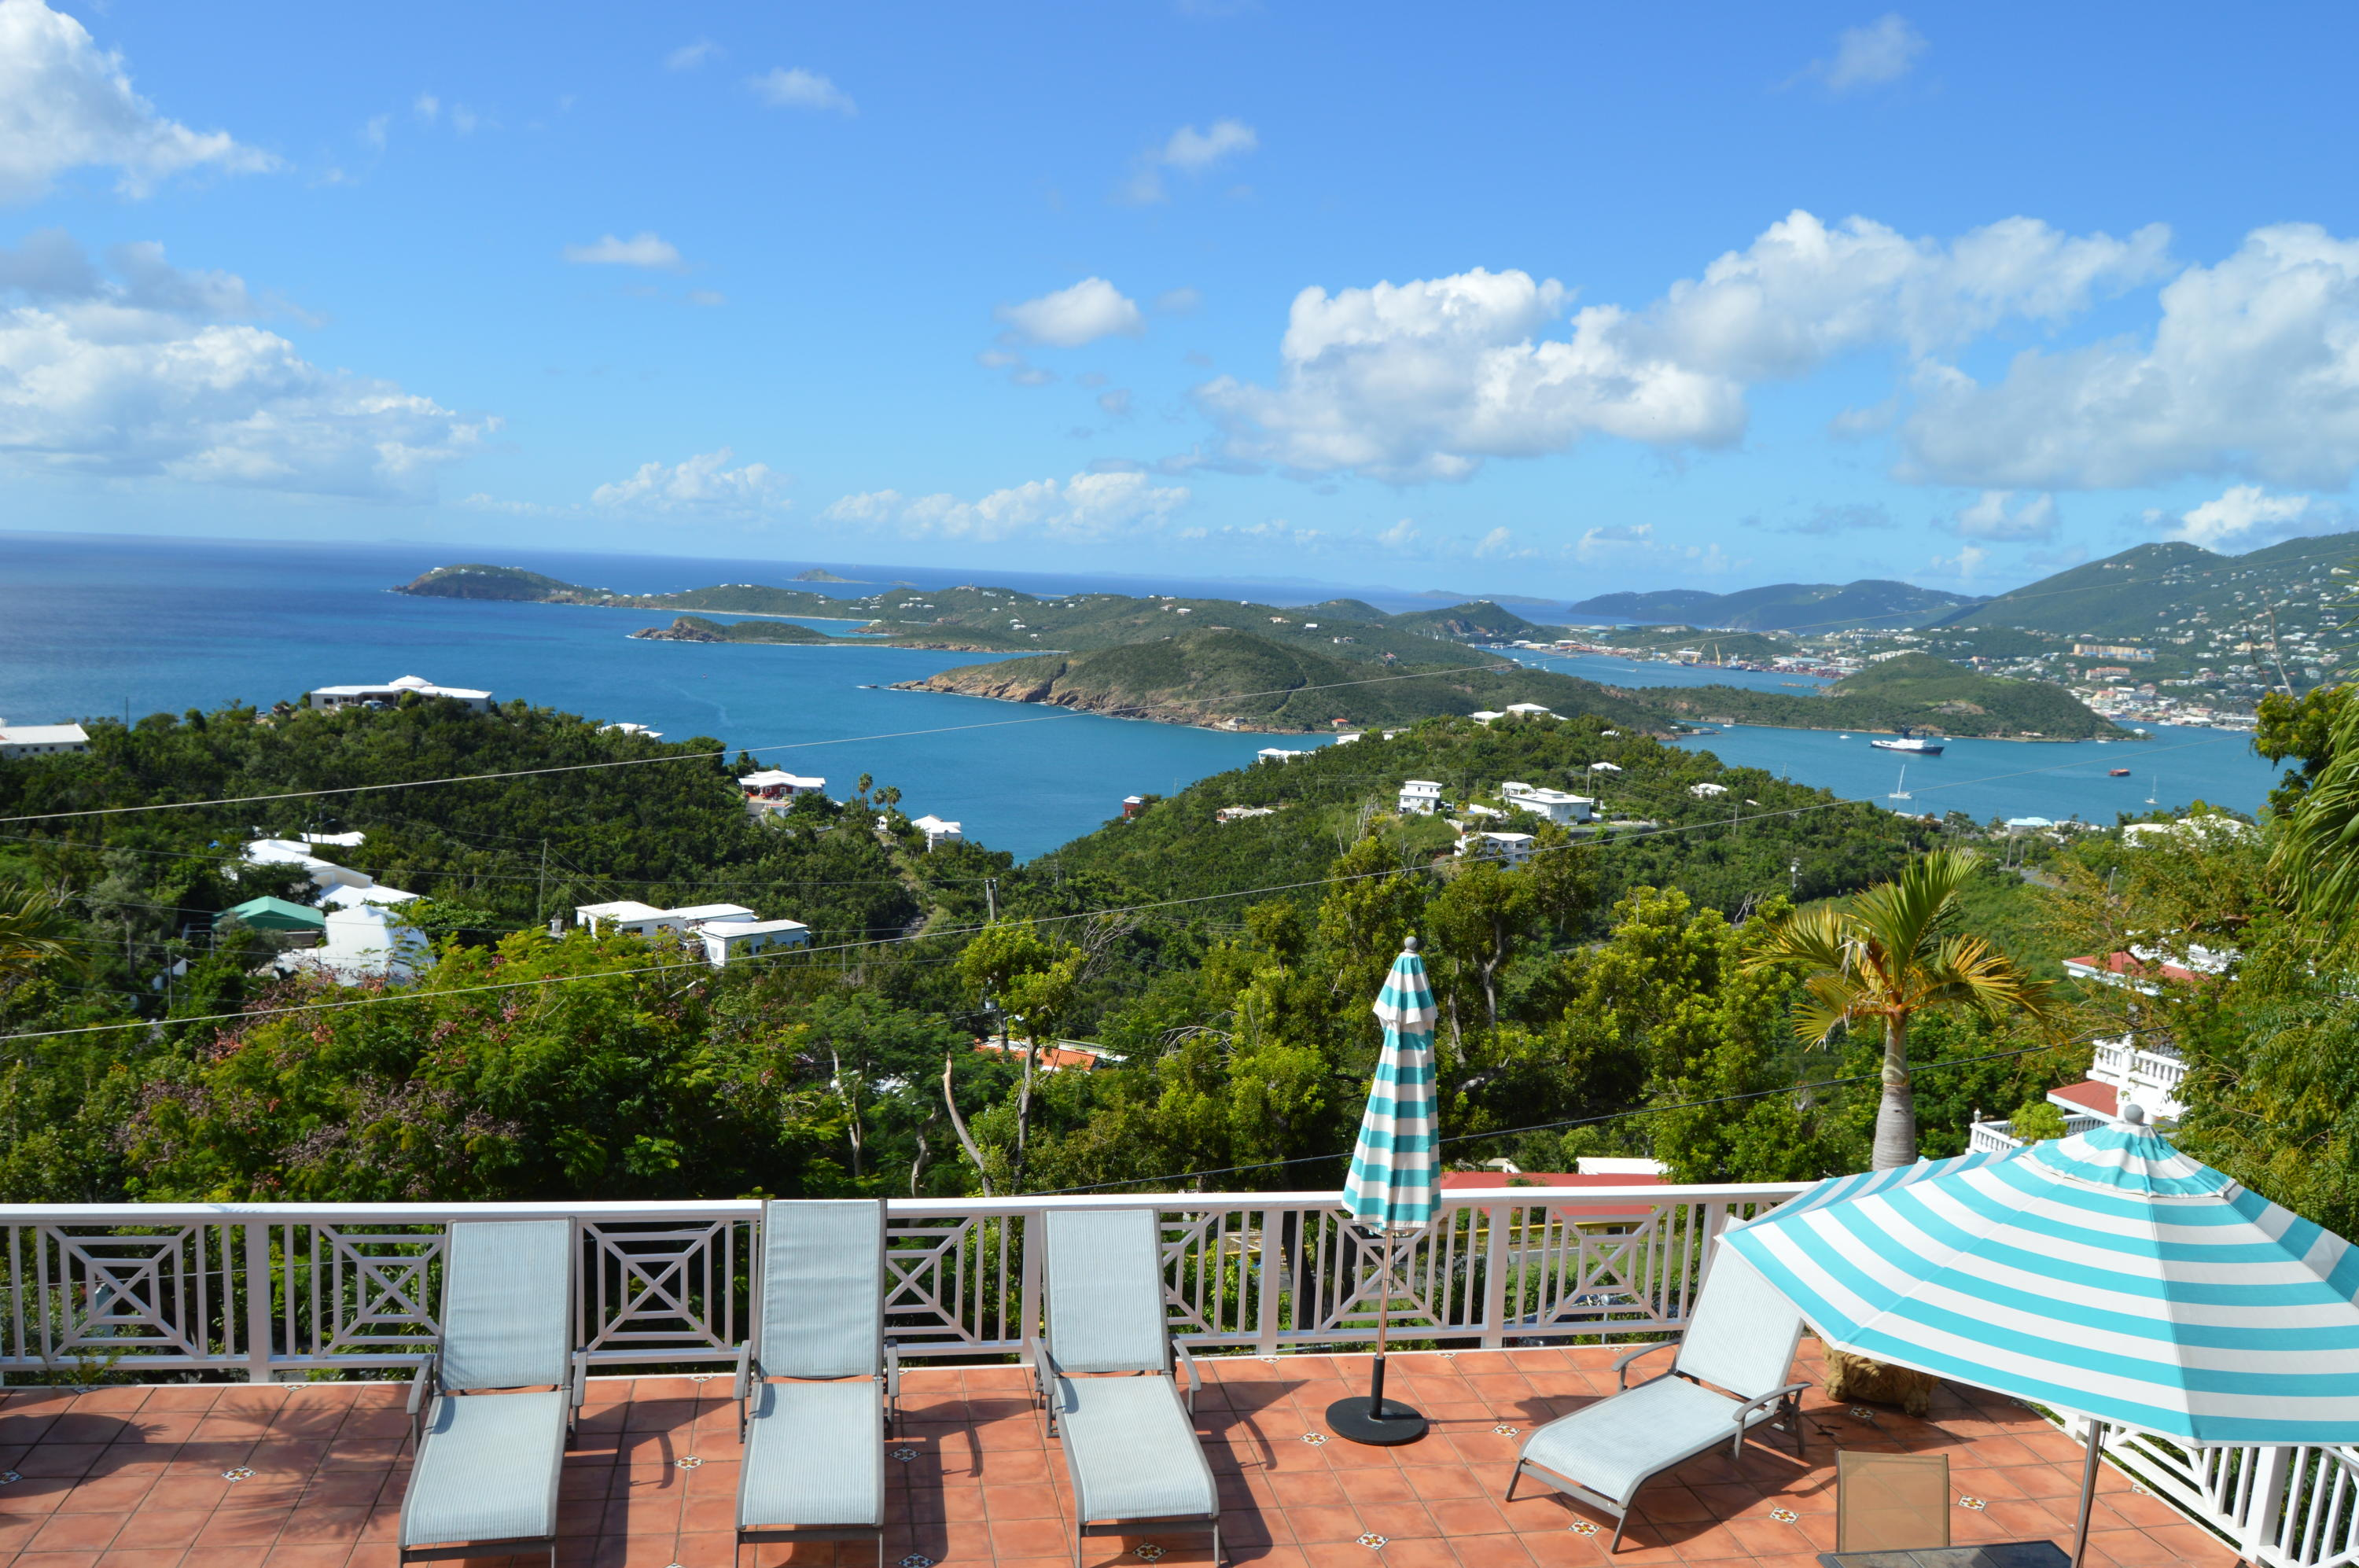 Multi-Family Home for Sale at 3 F-2 Bakkeroe FB 3 F-2 Bakkeroe FB St Thomas, Virgin Islands 00802 United States Virgin Islands